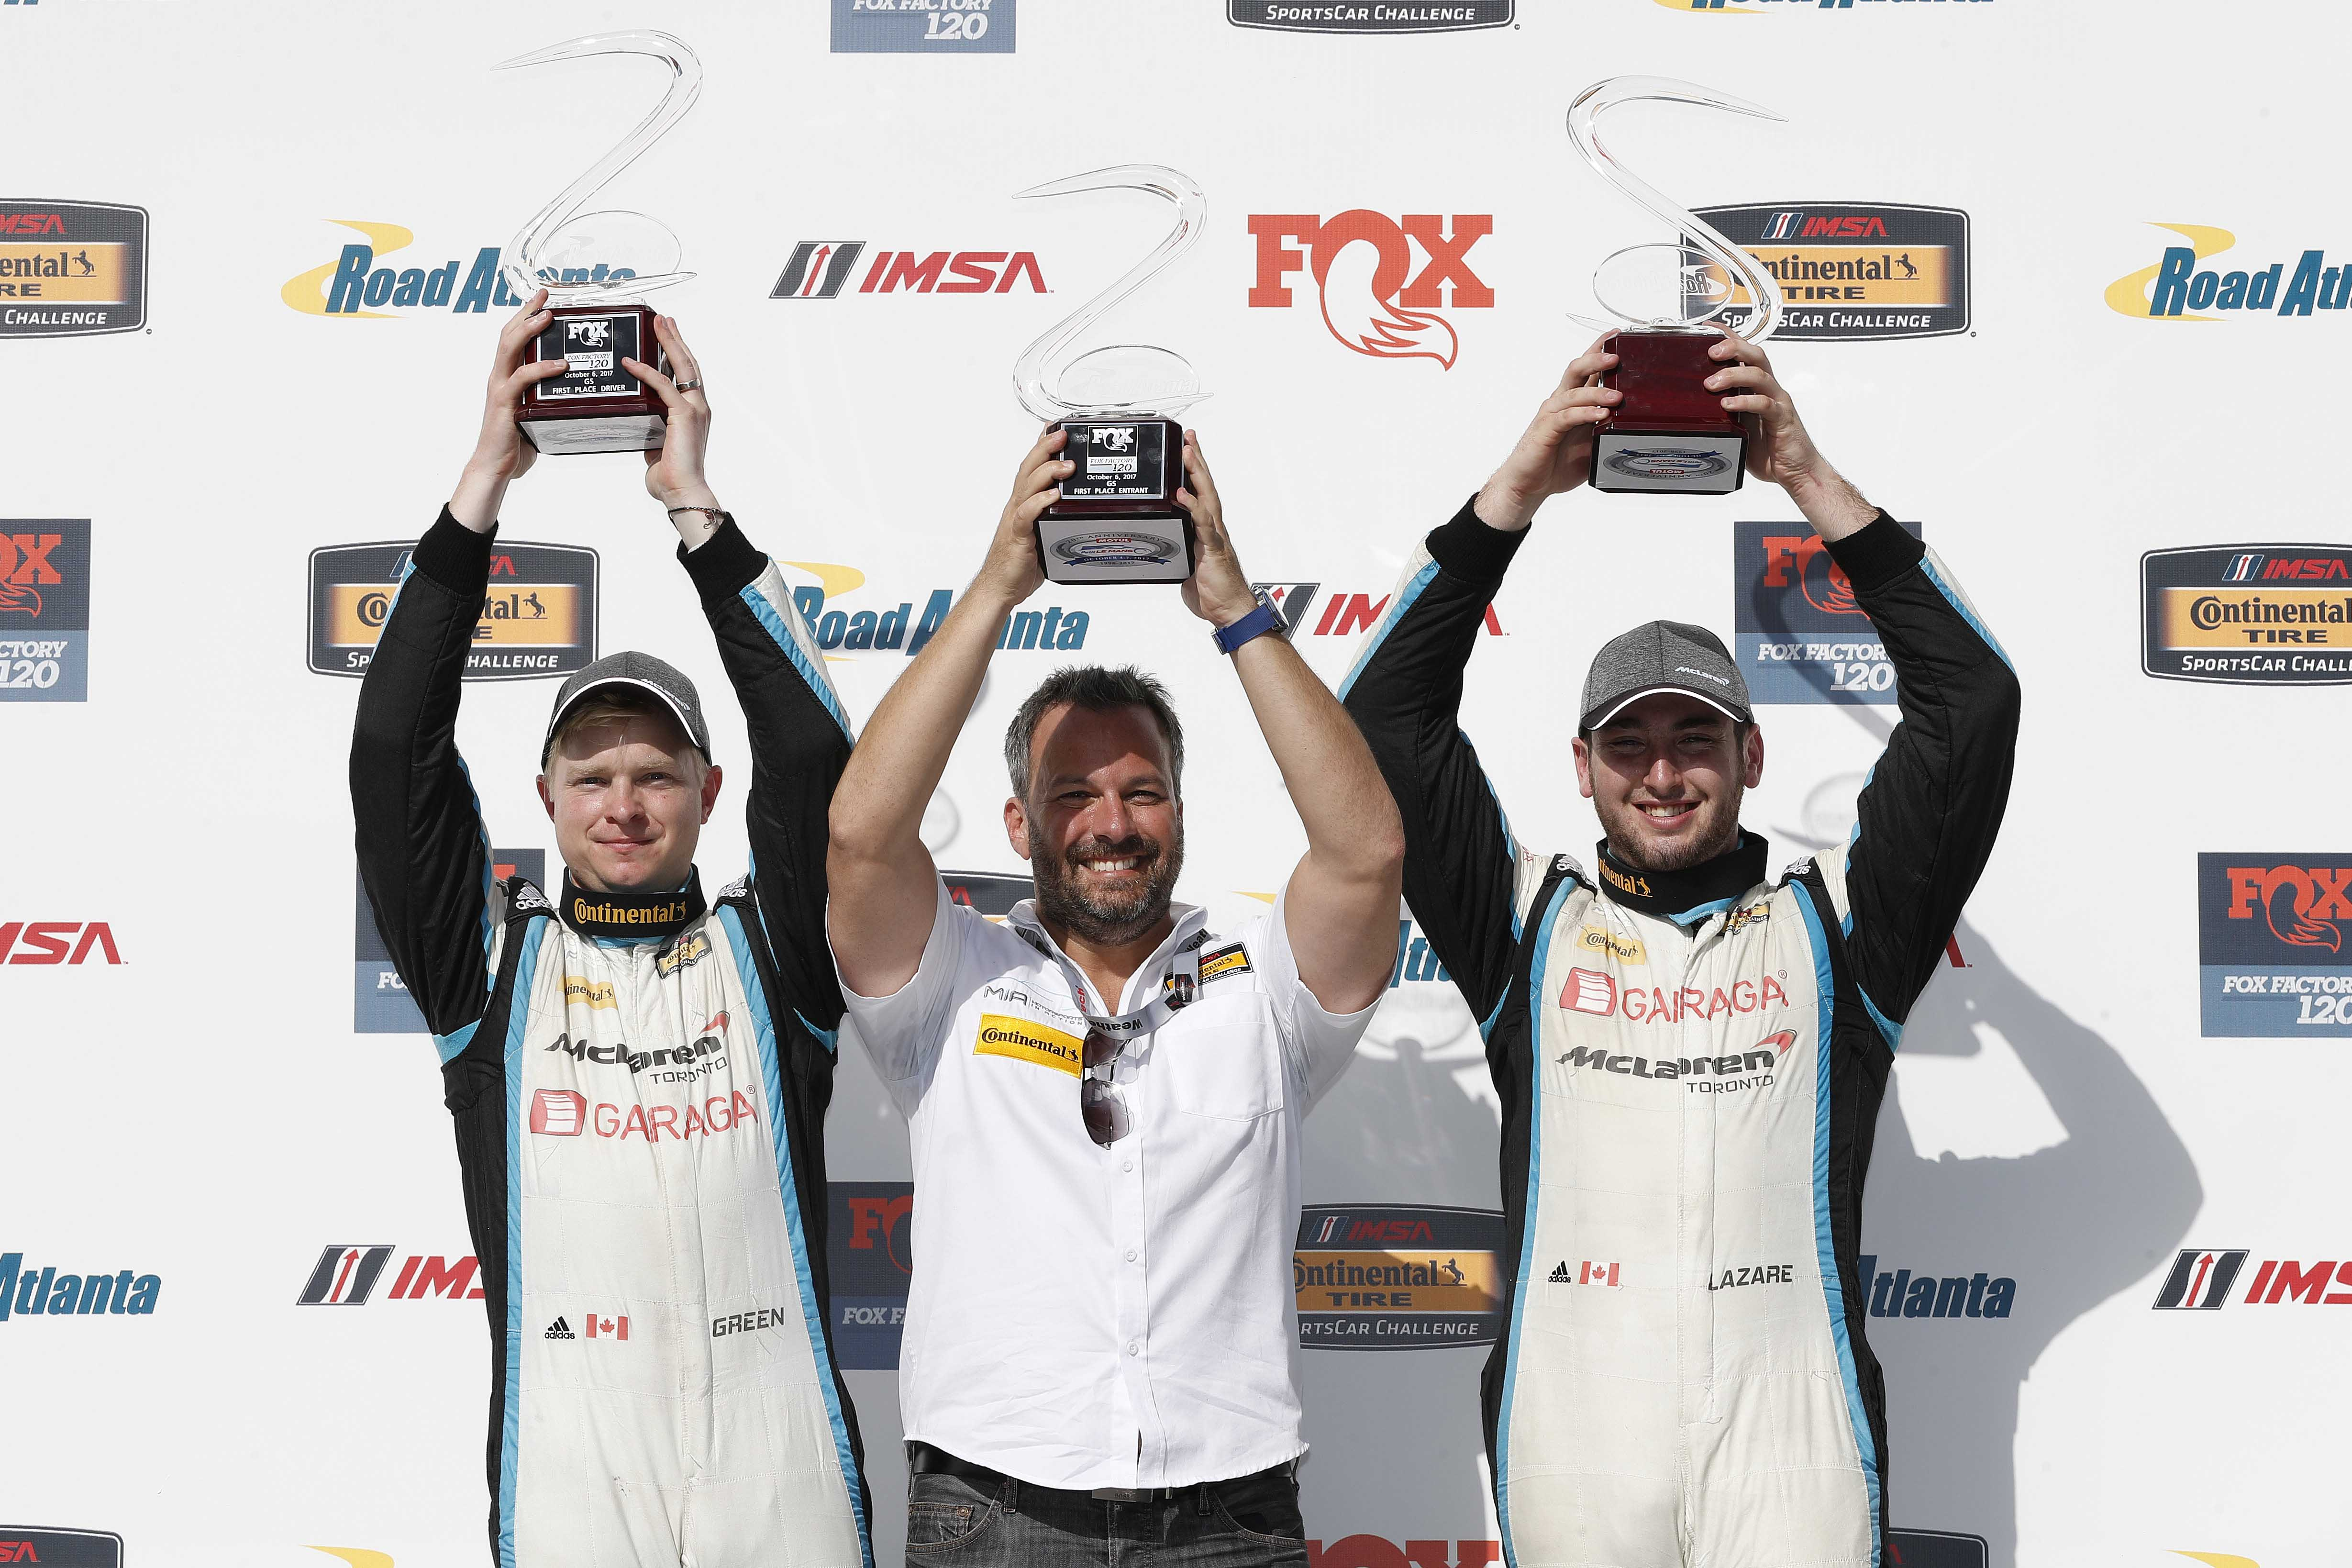 Victory For Jesse Lazare, Chris Green And Team MIA In Georgia!